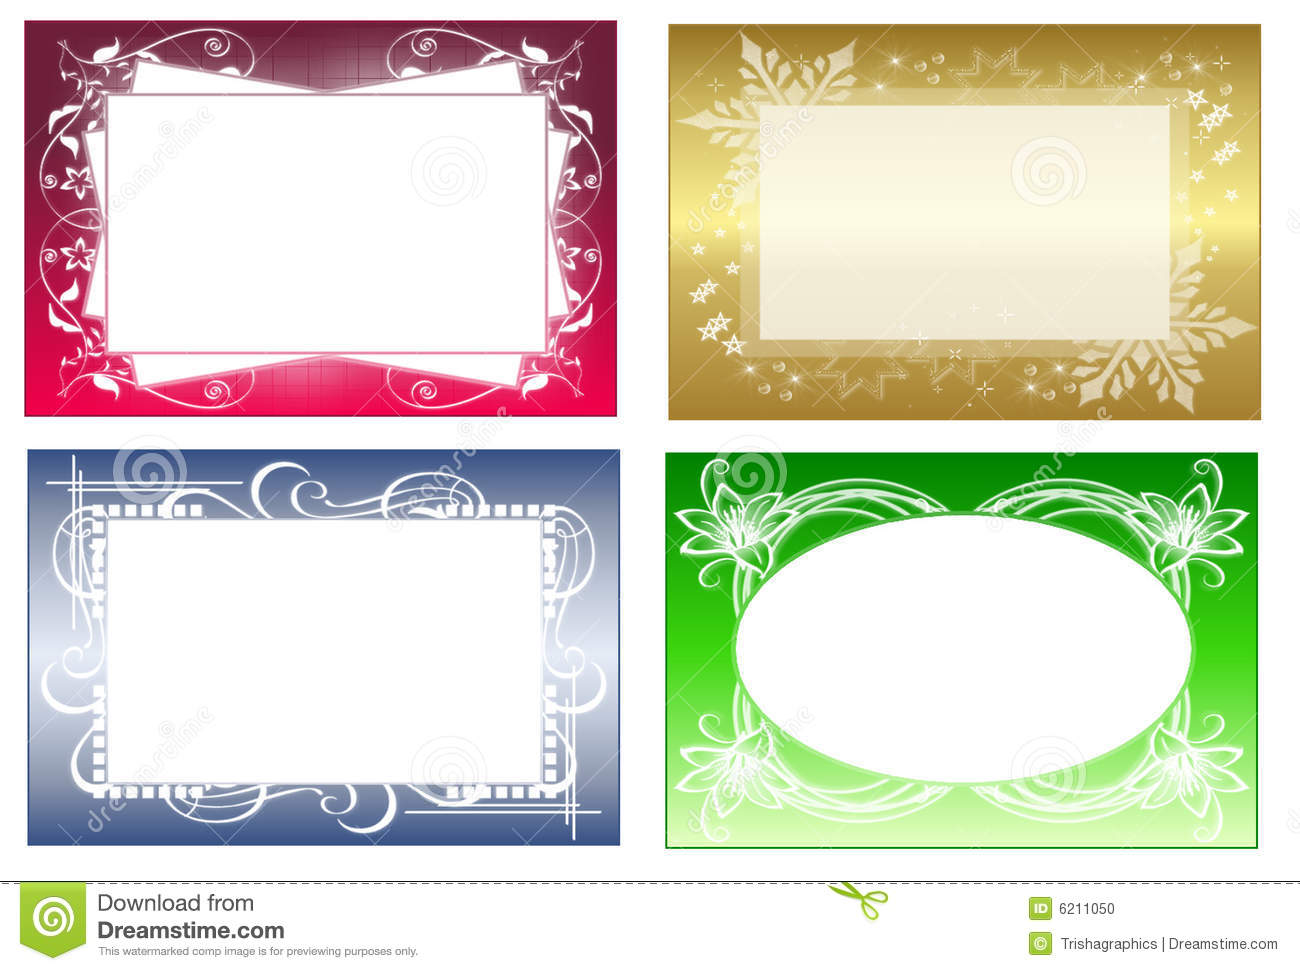 Frames stock illustration. Illustration of colored, purple - 6211050